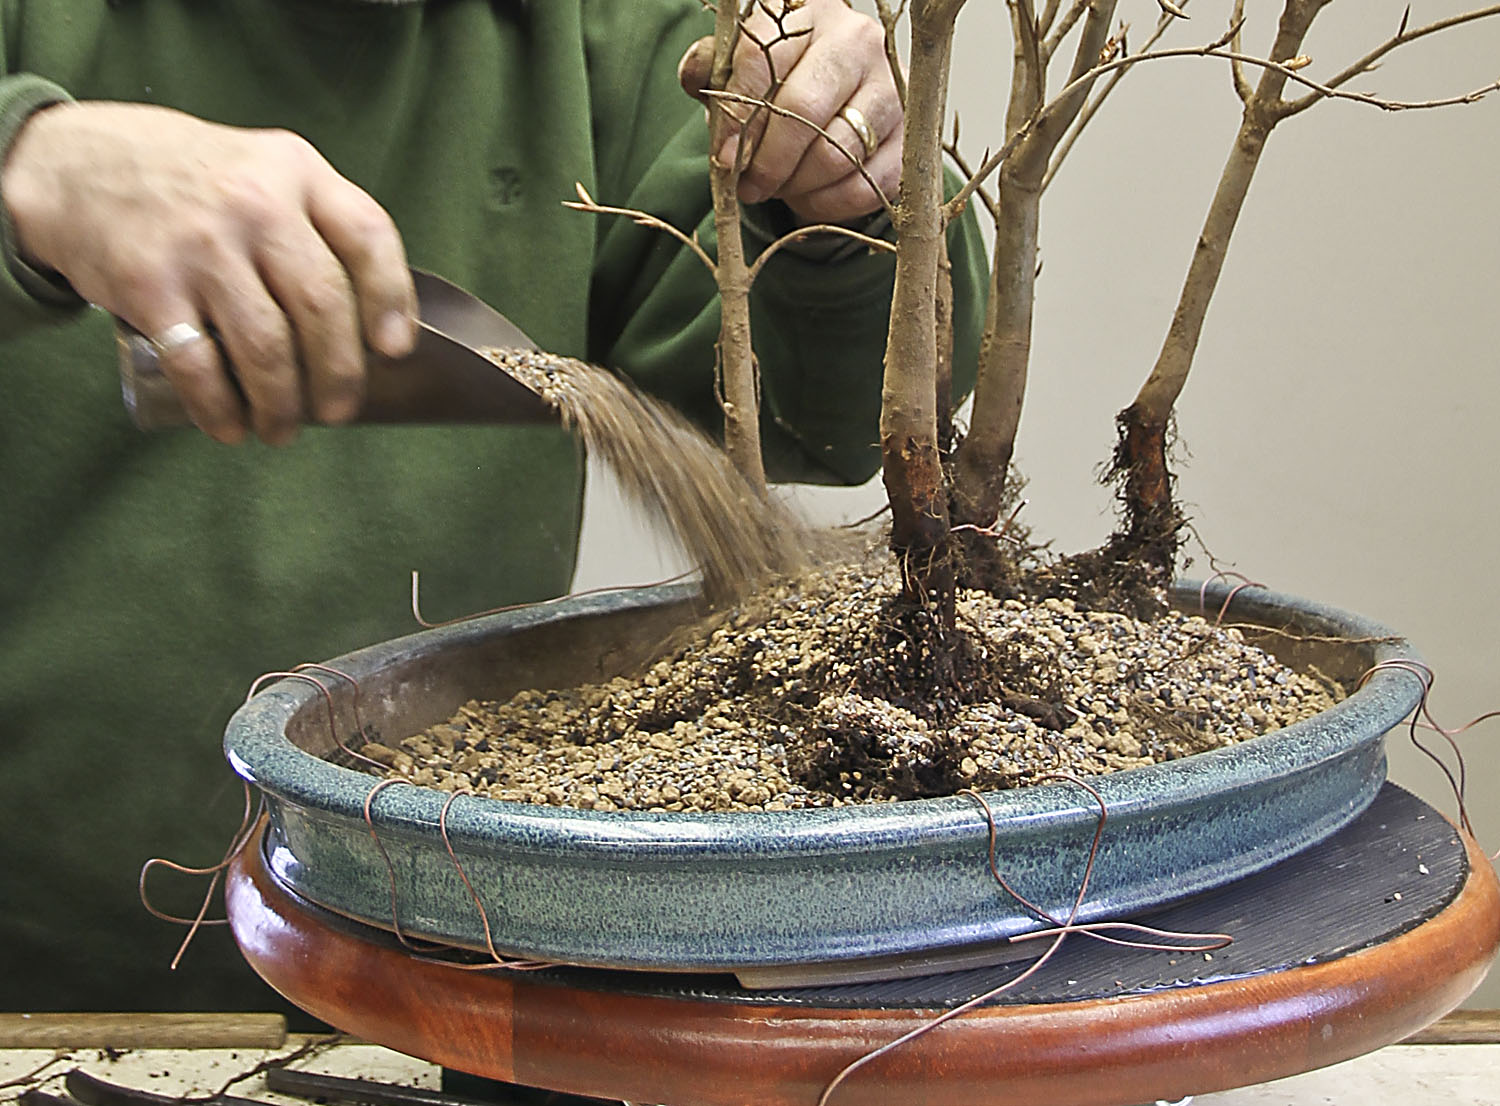 creating a beech forest bonsai valavanis bonsai blog rh valavanisbonsaiblog com Bonsai Wiring Tips Bonsai Silhouette